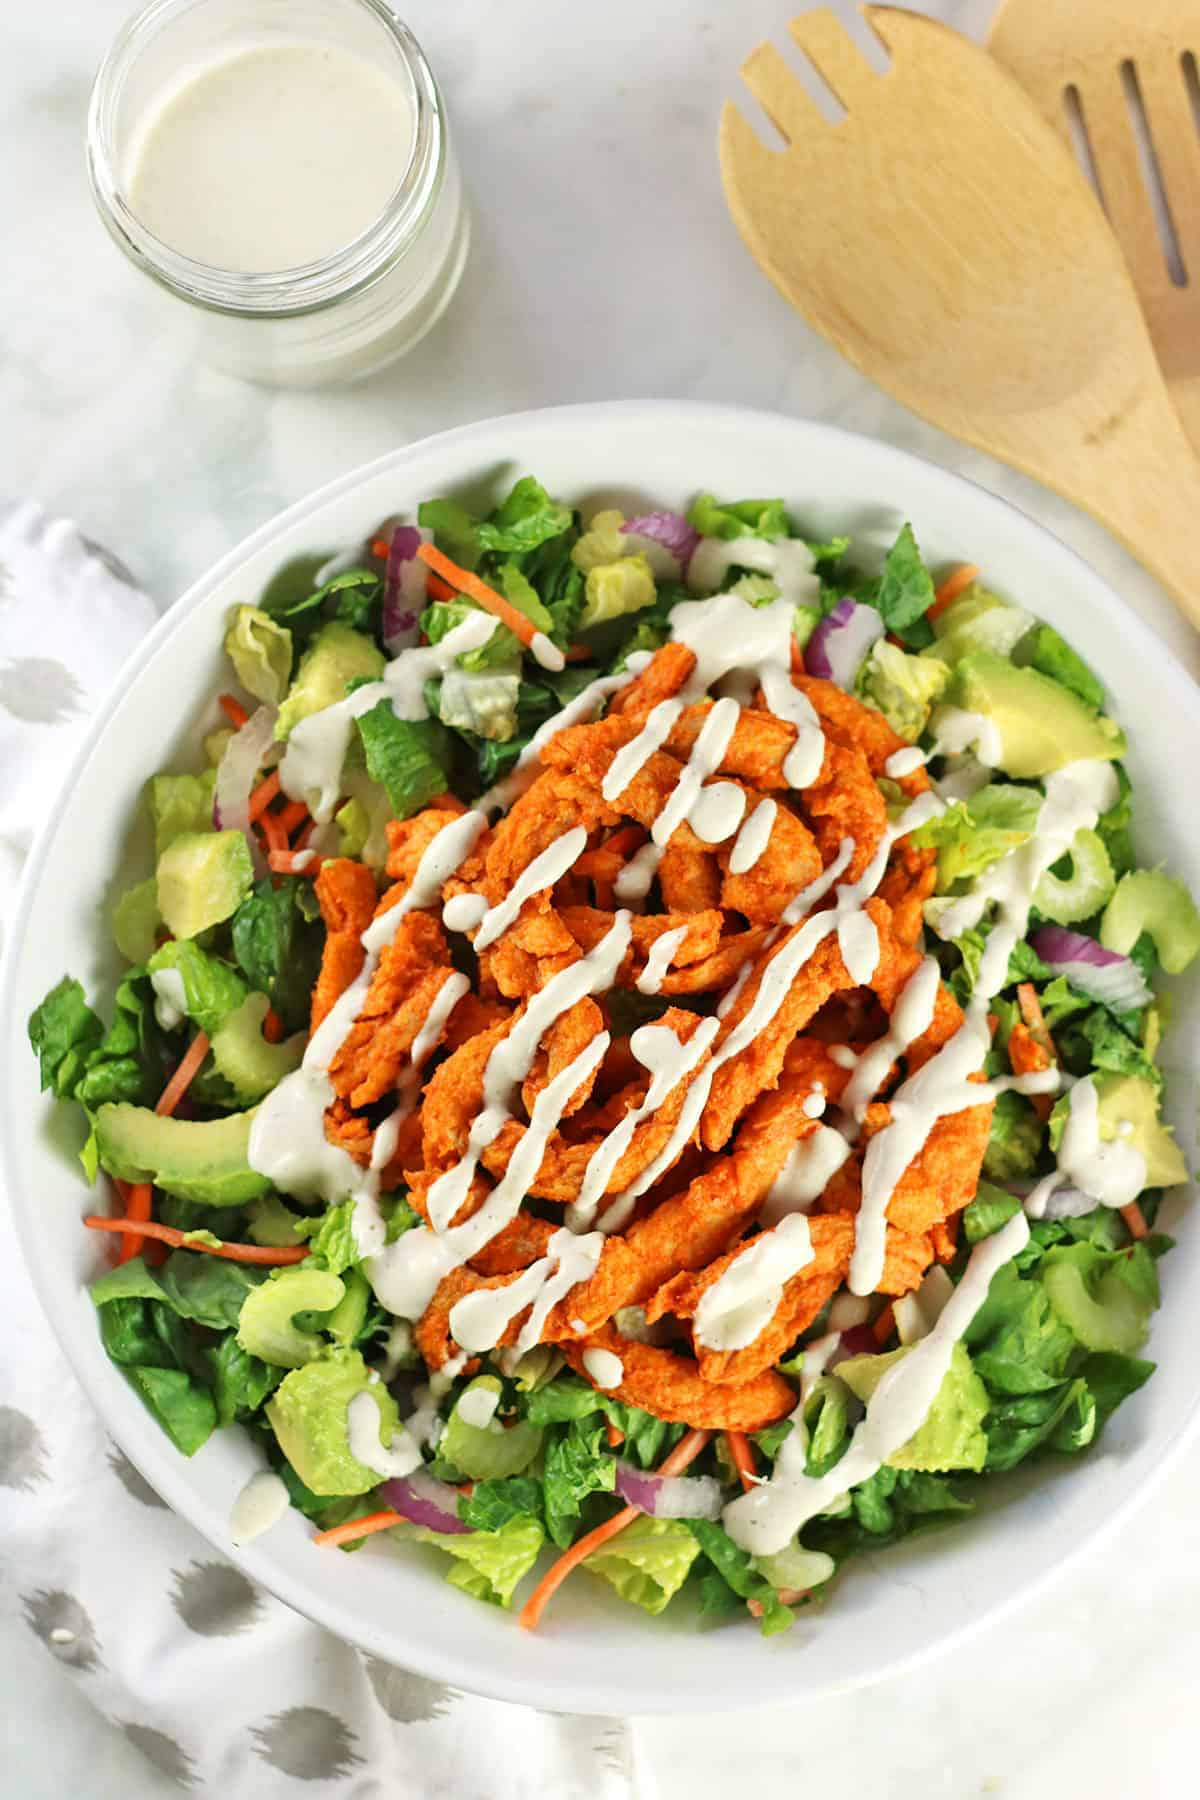 Soy Curls on top of Salad with Ranch Dressing